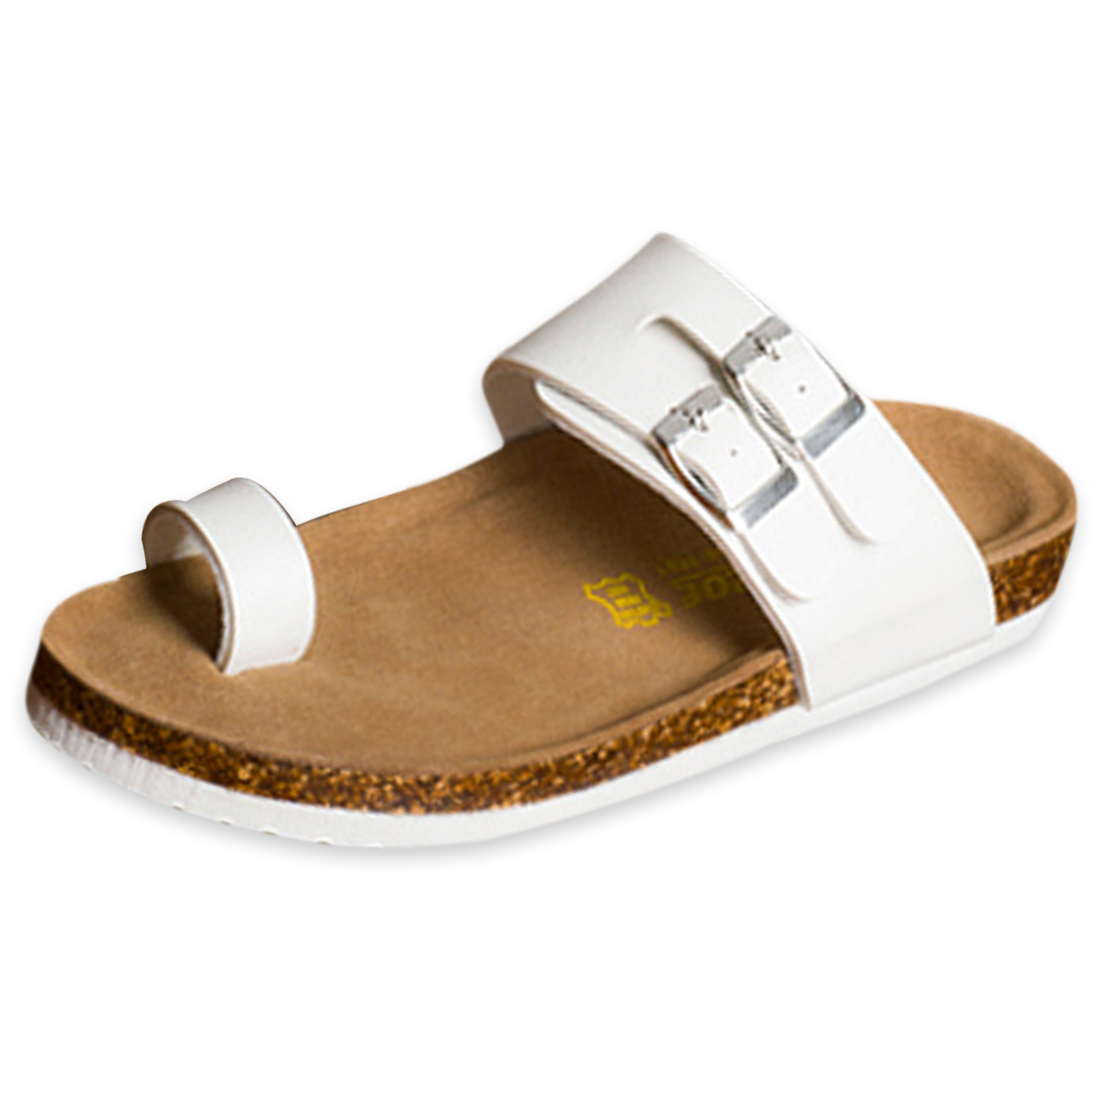 White US Size 8 Adjustable Straps Manmade Sole Toe Loop Men Sandal